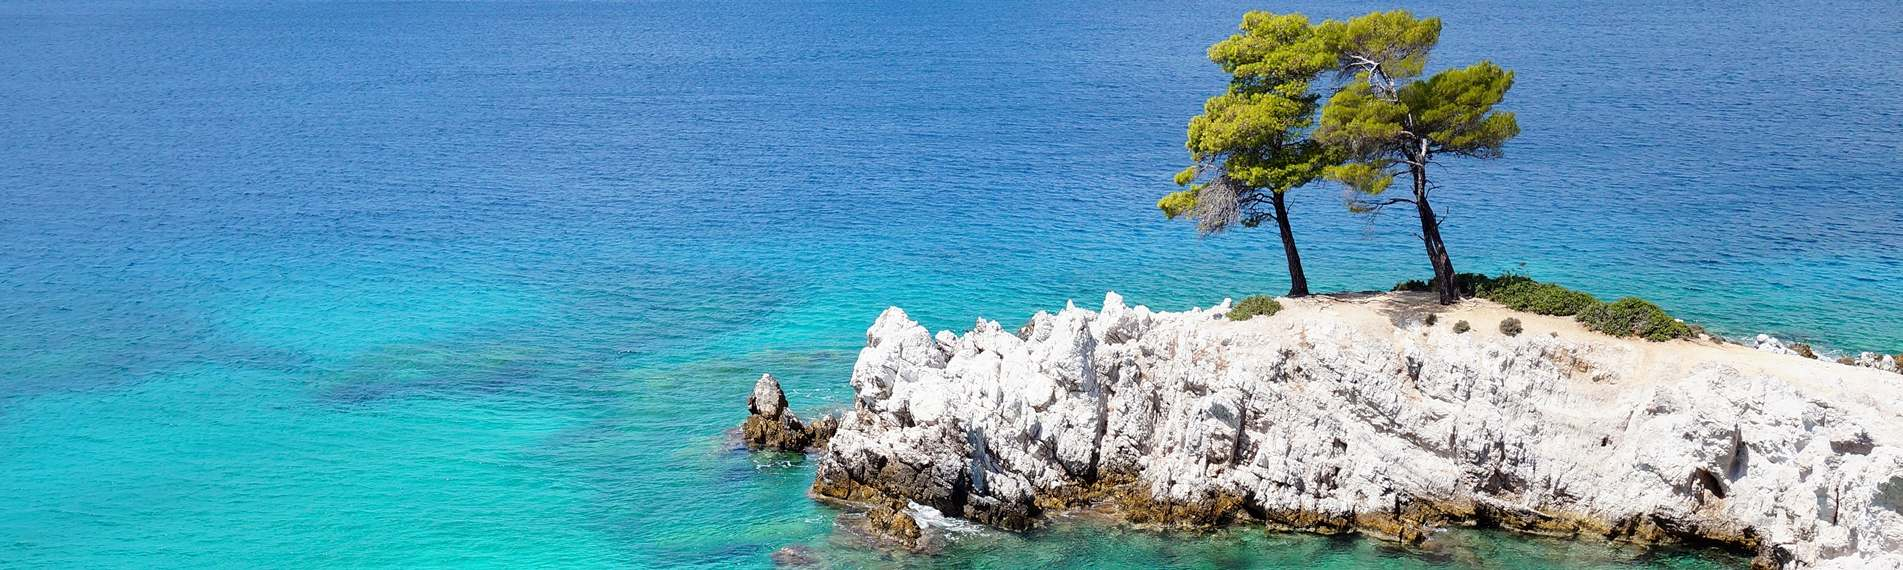 View of the crystal clear sea from above on Skopelos.